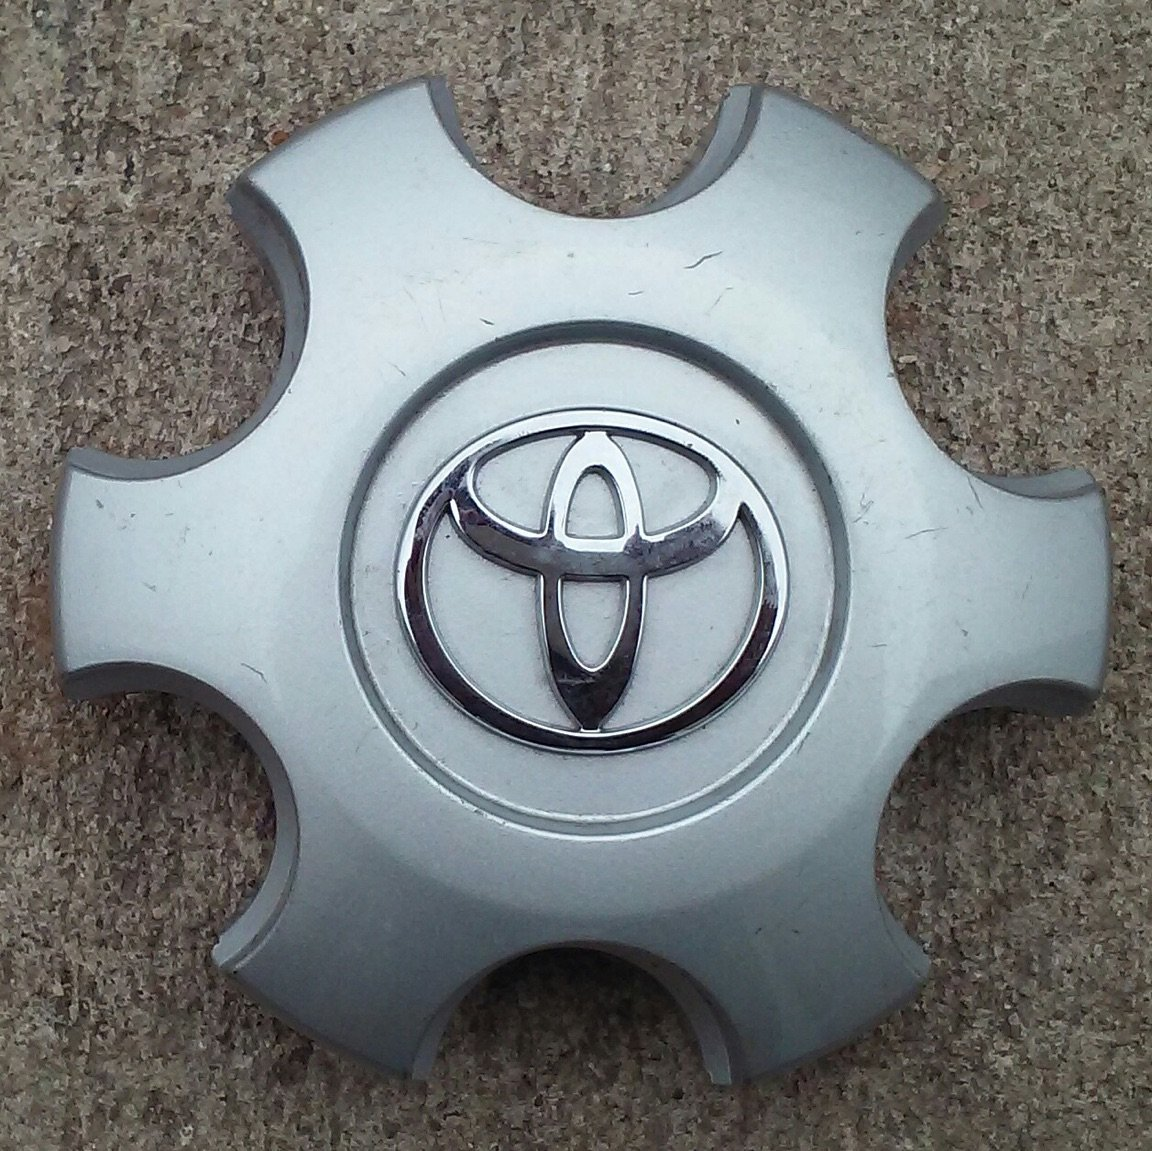 OEM TOYOTA TACOMA WHEEL CENTER CAP HUBCAP 42603-AD060 HOLL# 69461 by Toyota